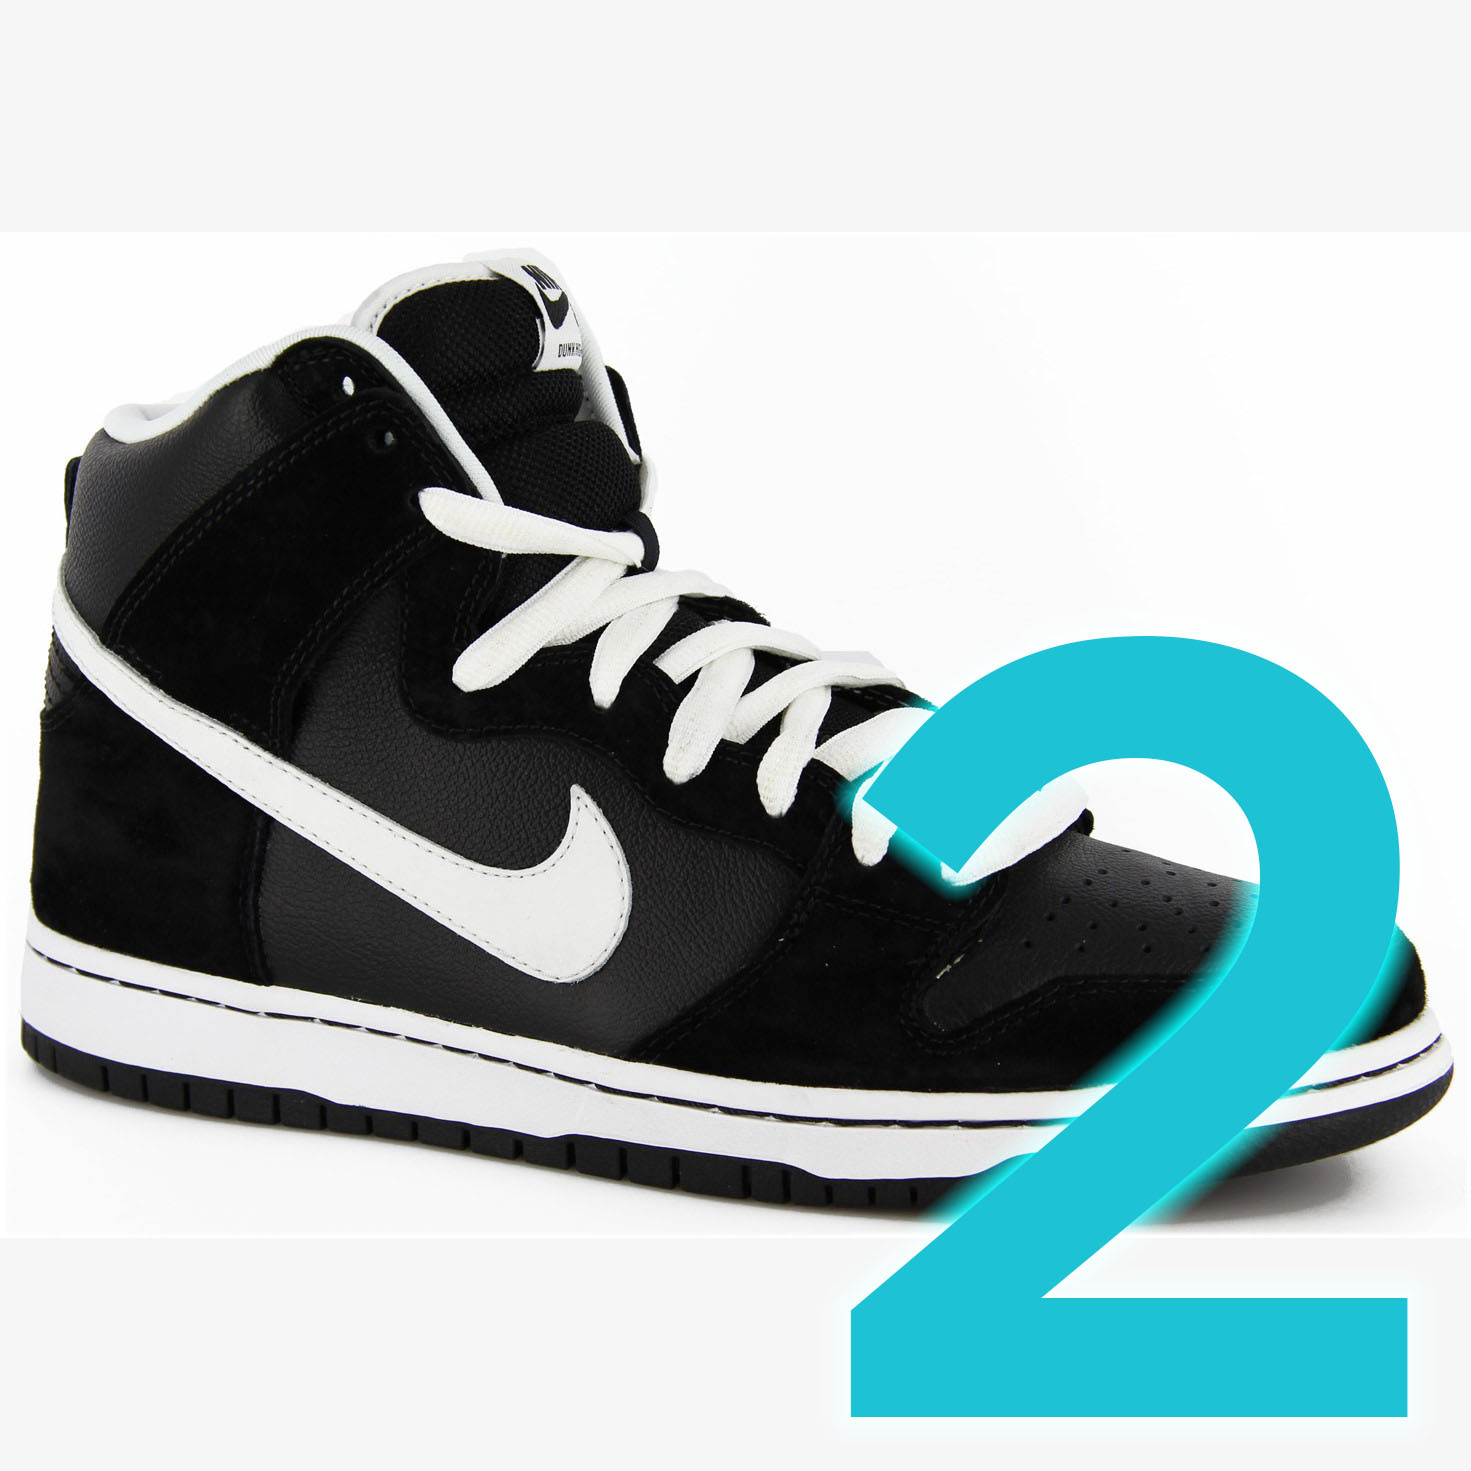 Nike-sb-dunk-high-pro-sb-skate-shoes-black-whit2.jpg